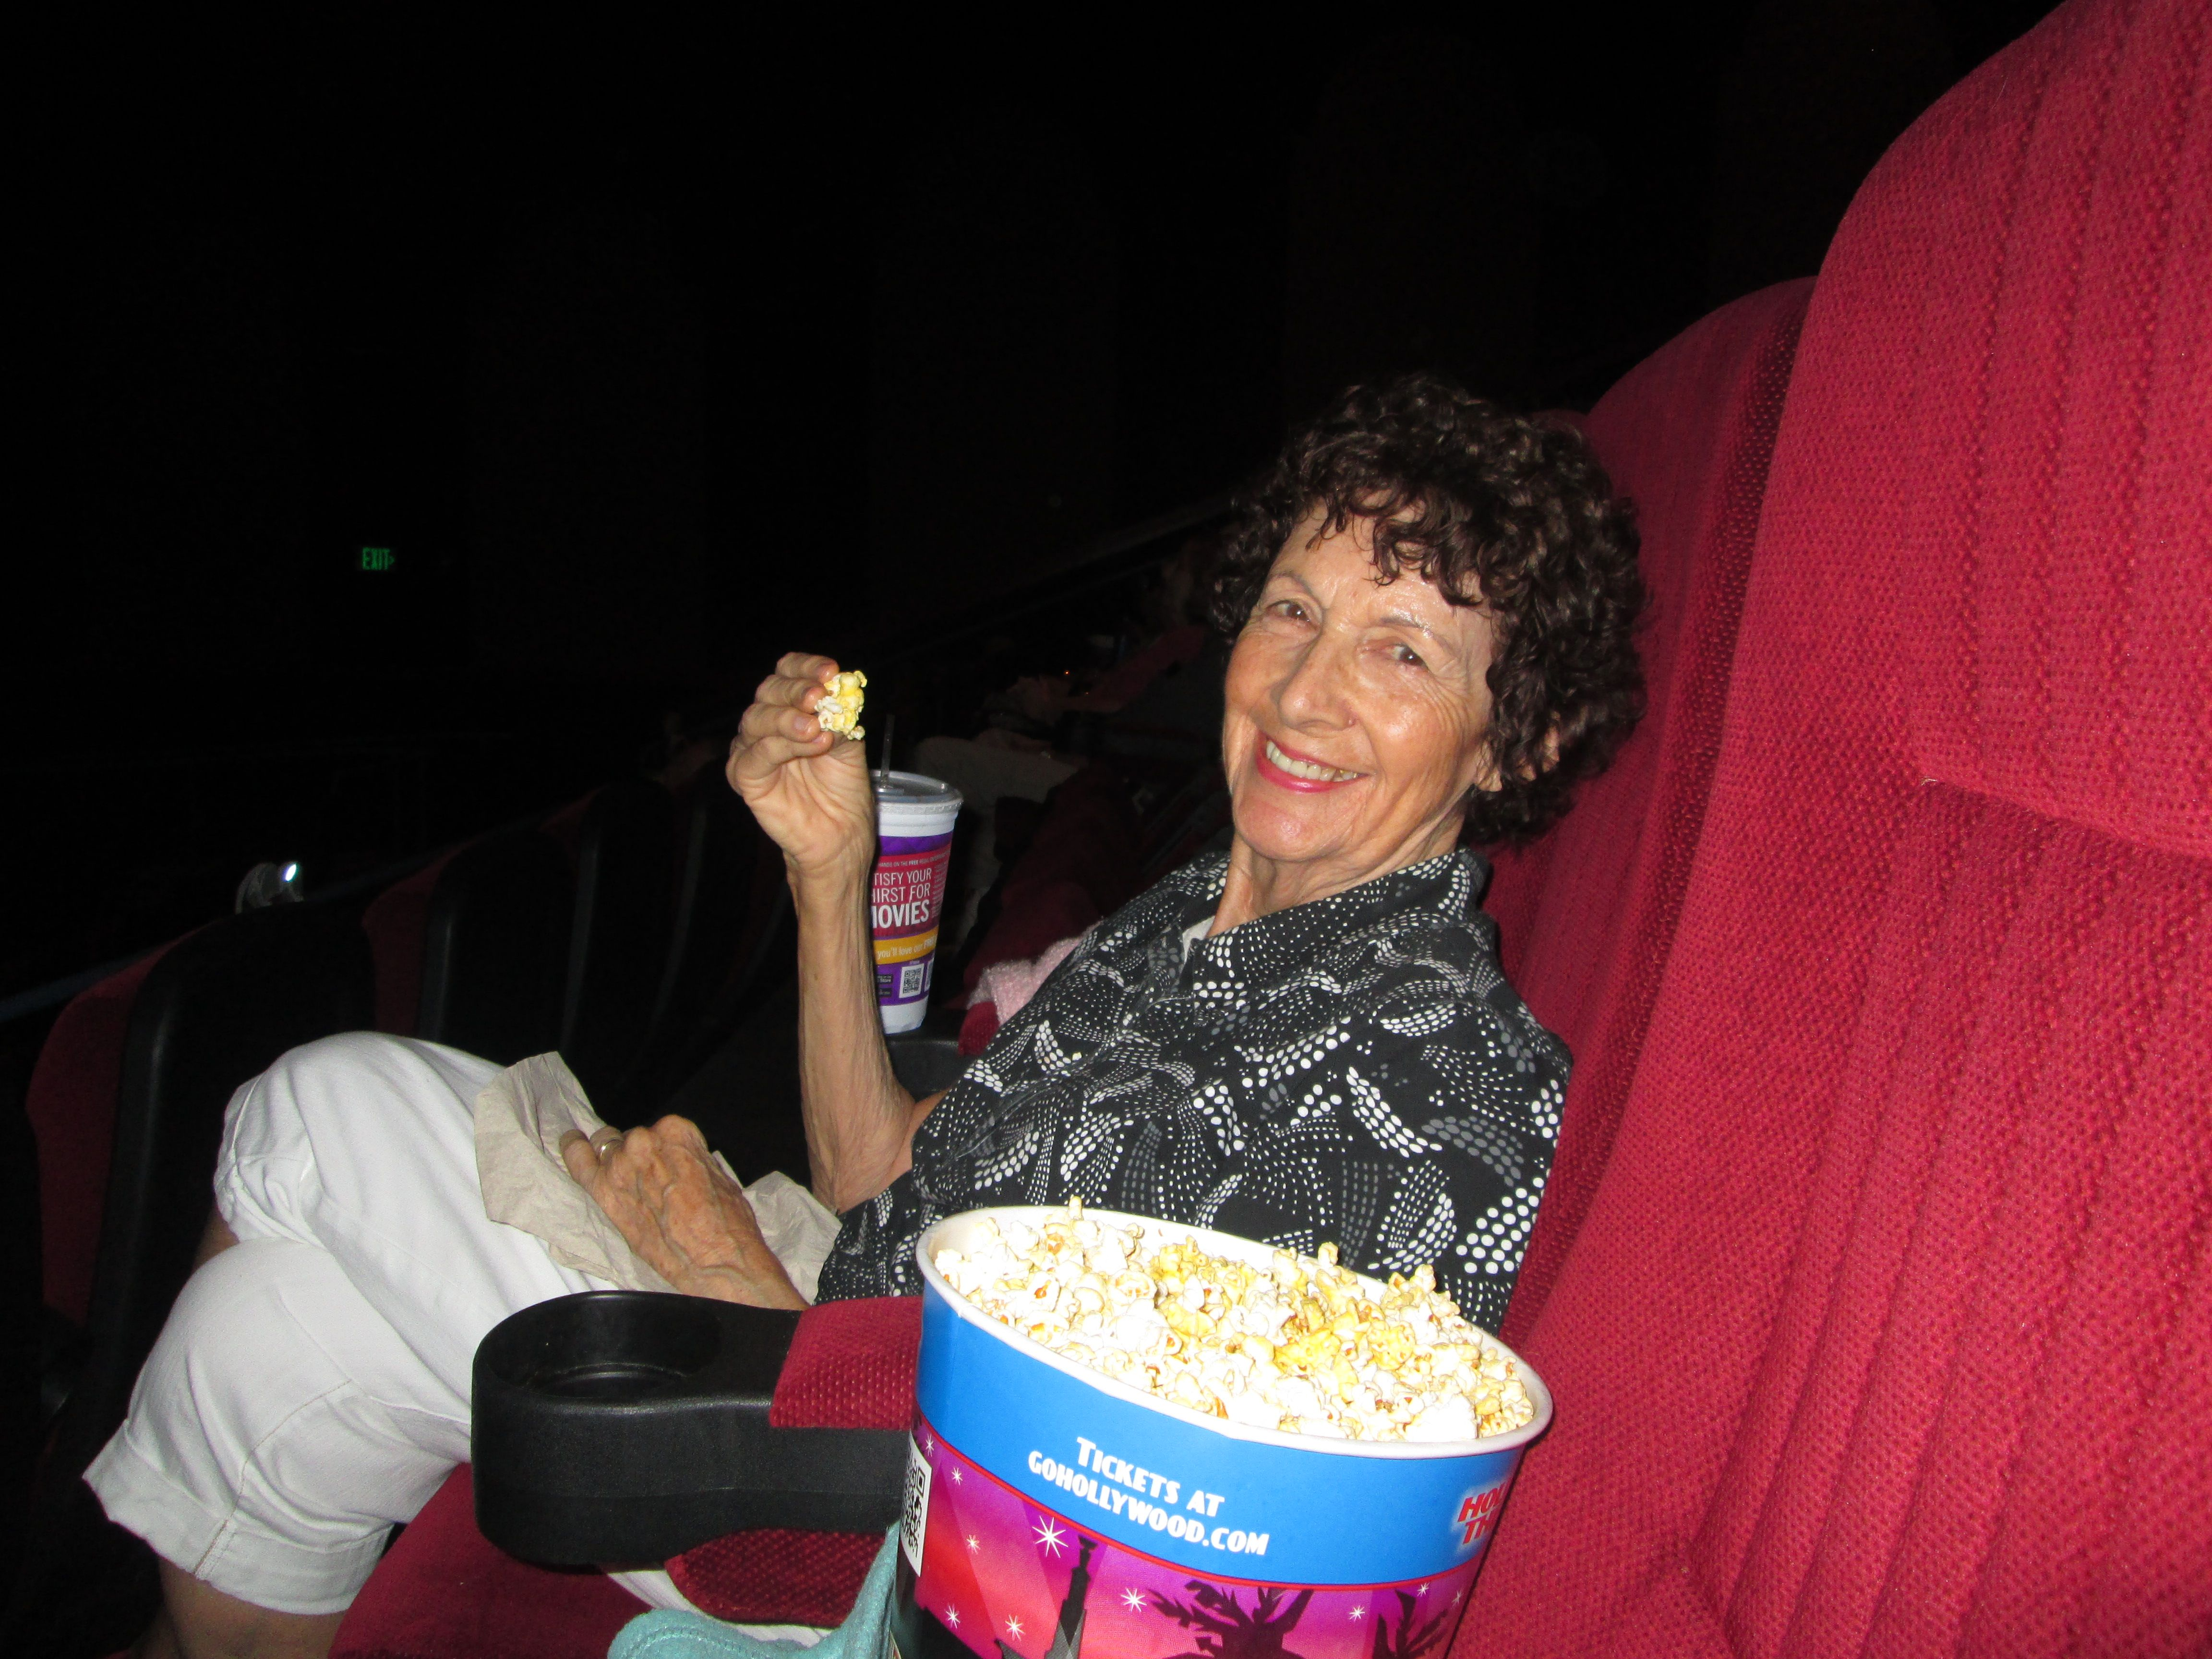 My mom and I love going to the movies. I always take a little blanket, as she gets cold so easy. And I always 'splurge' on the extras...popcorn, soda, etc....she is worth it!